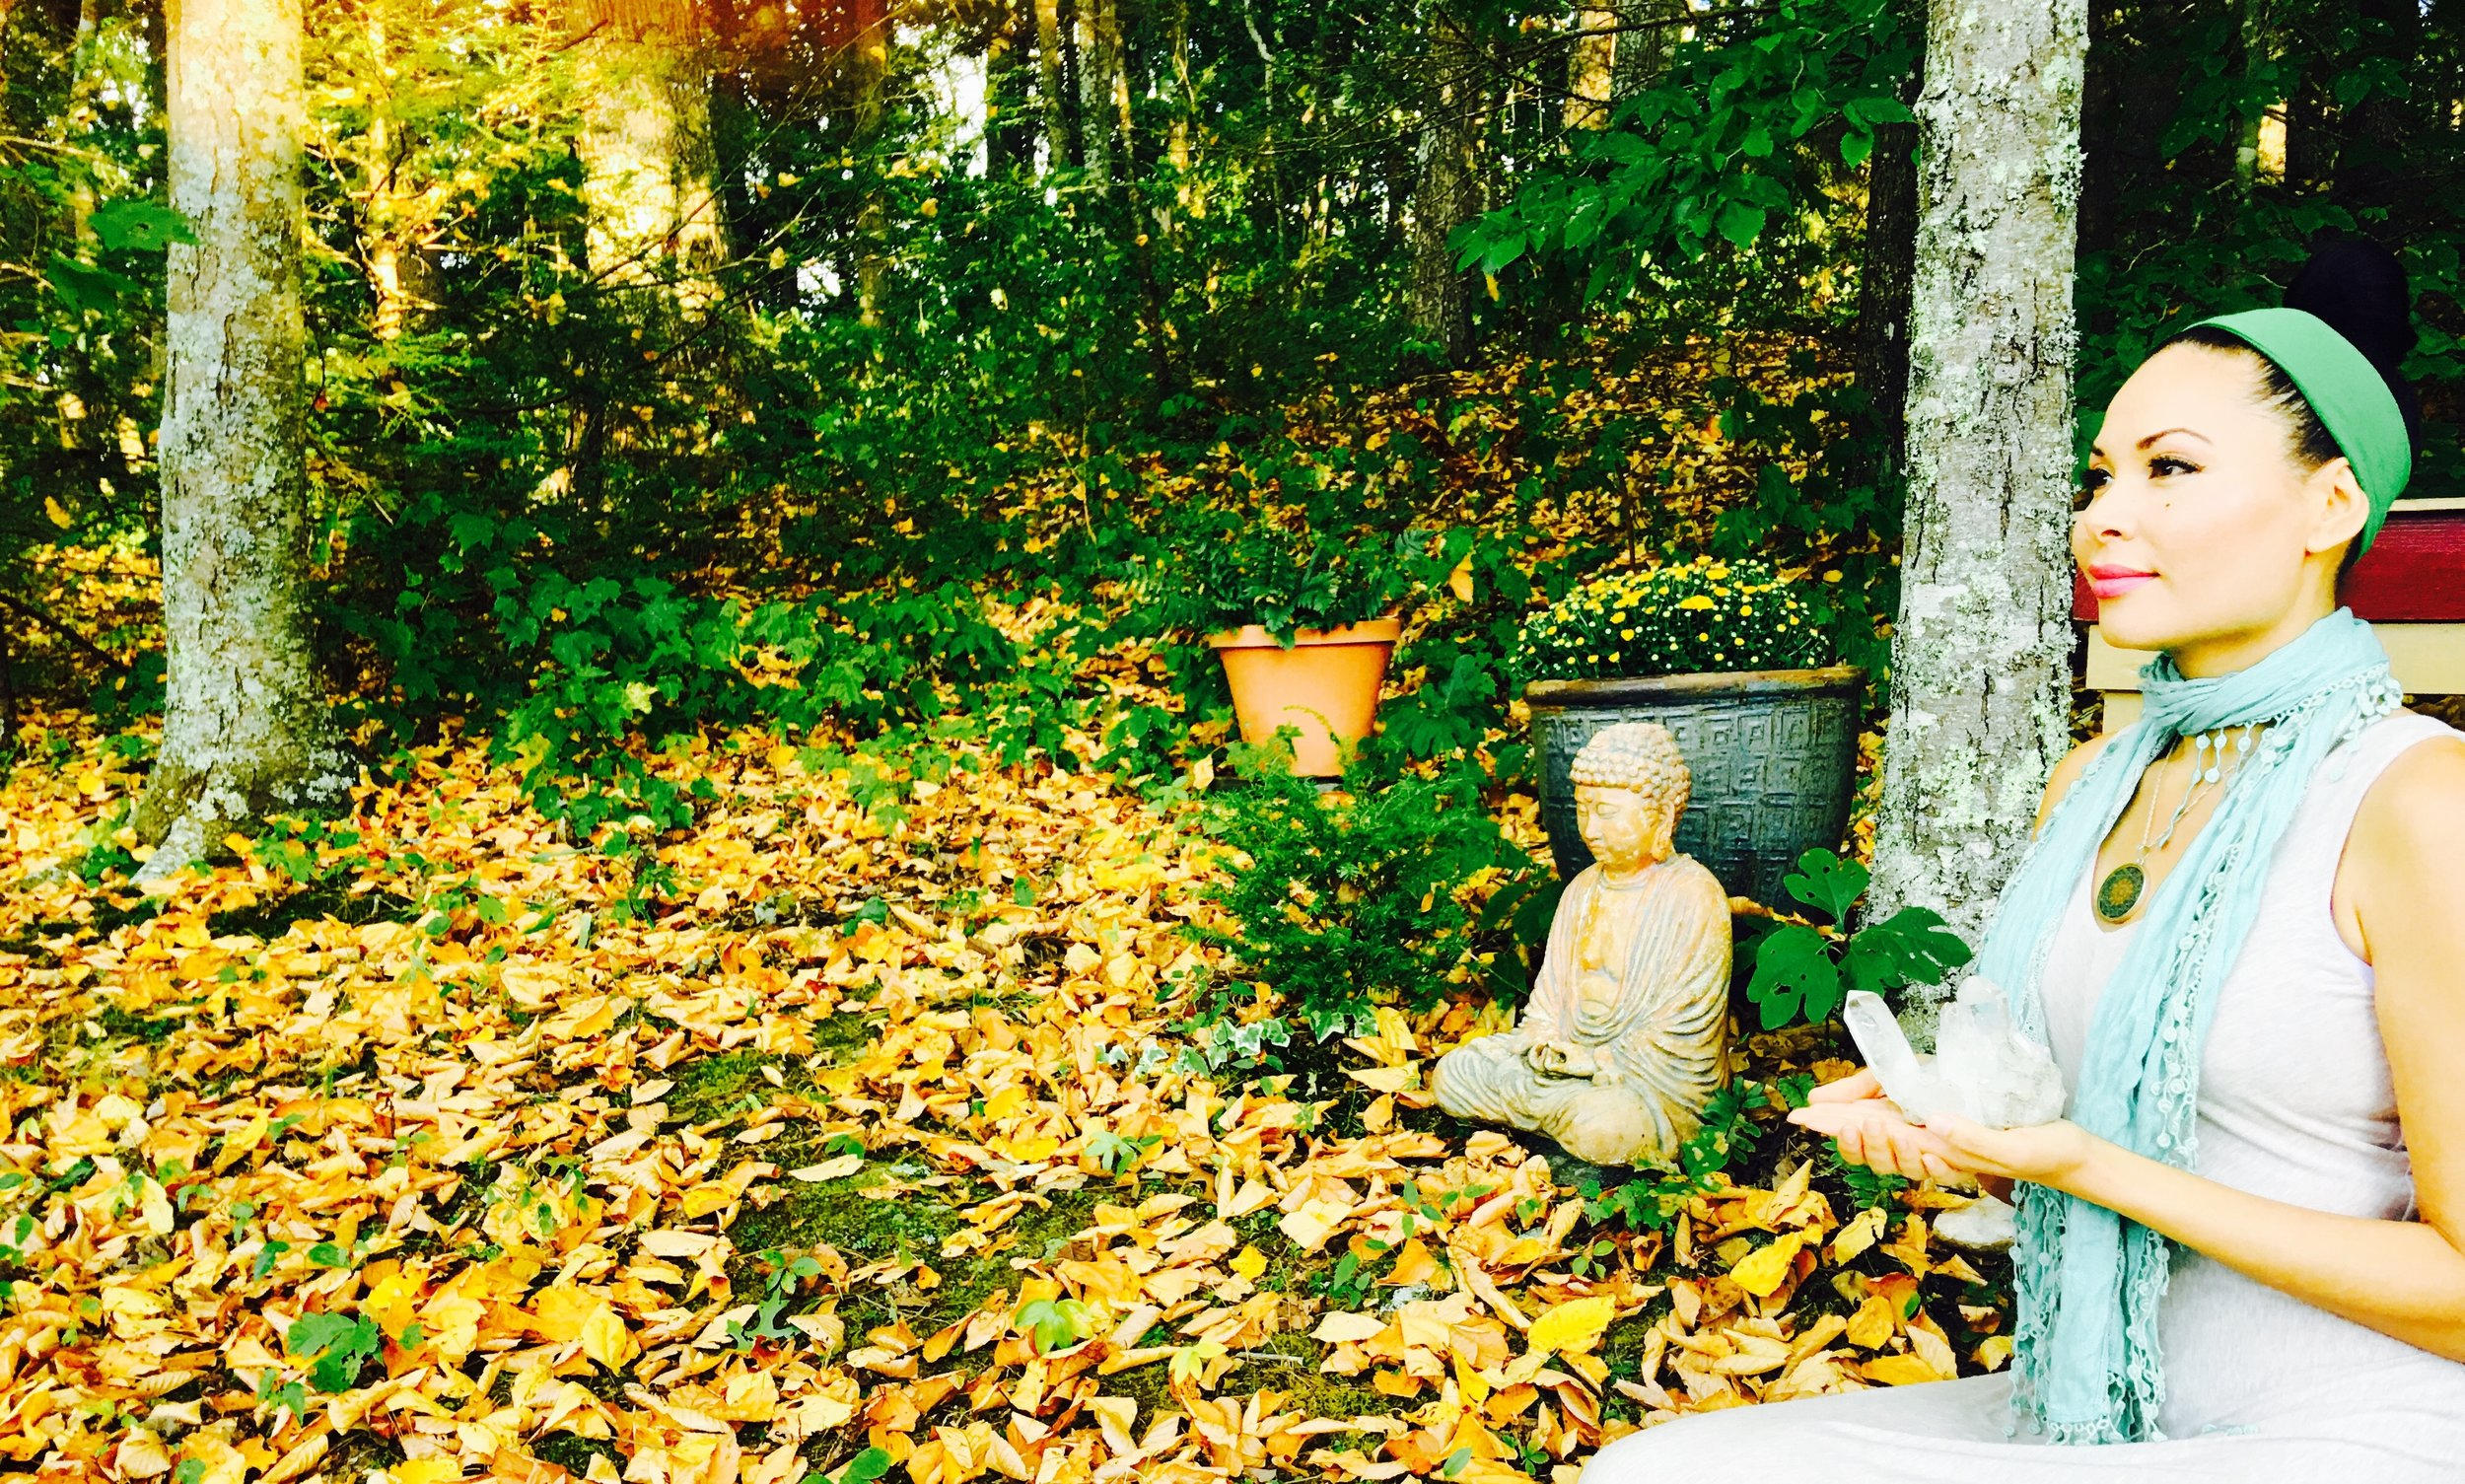 At Crystal Mountain Sanctuary in the Appalachians